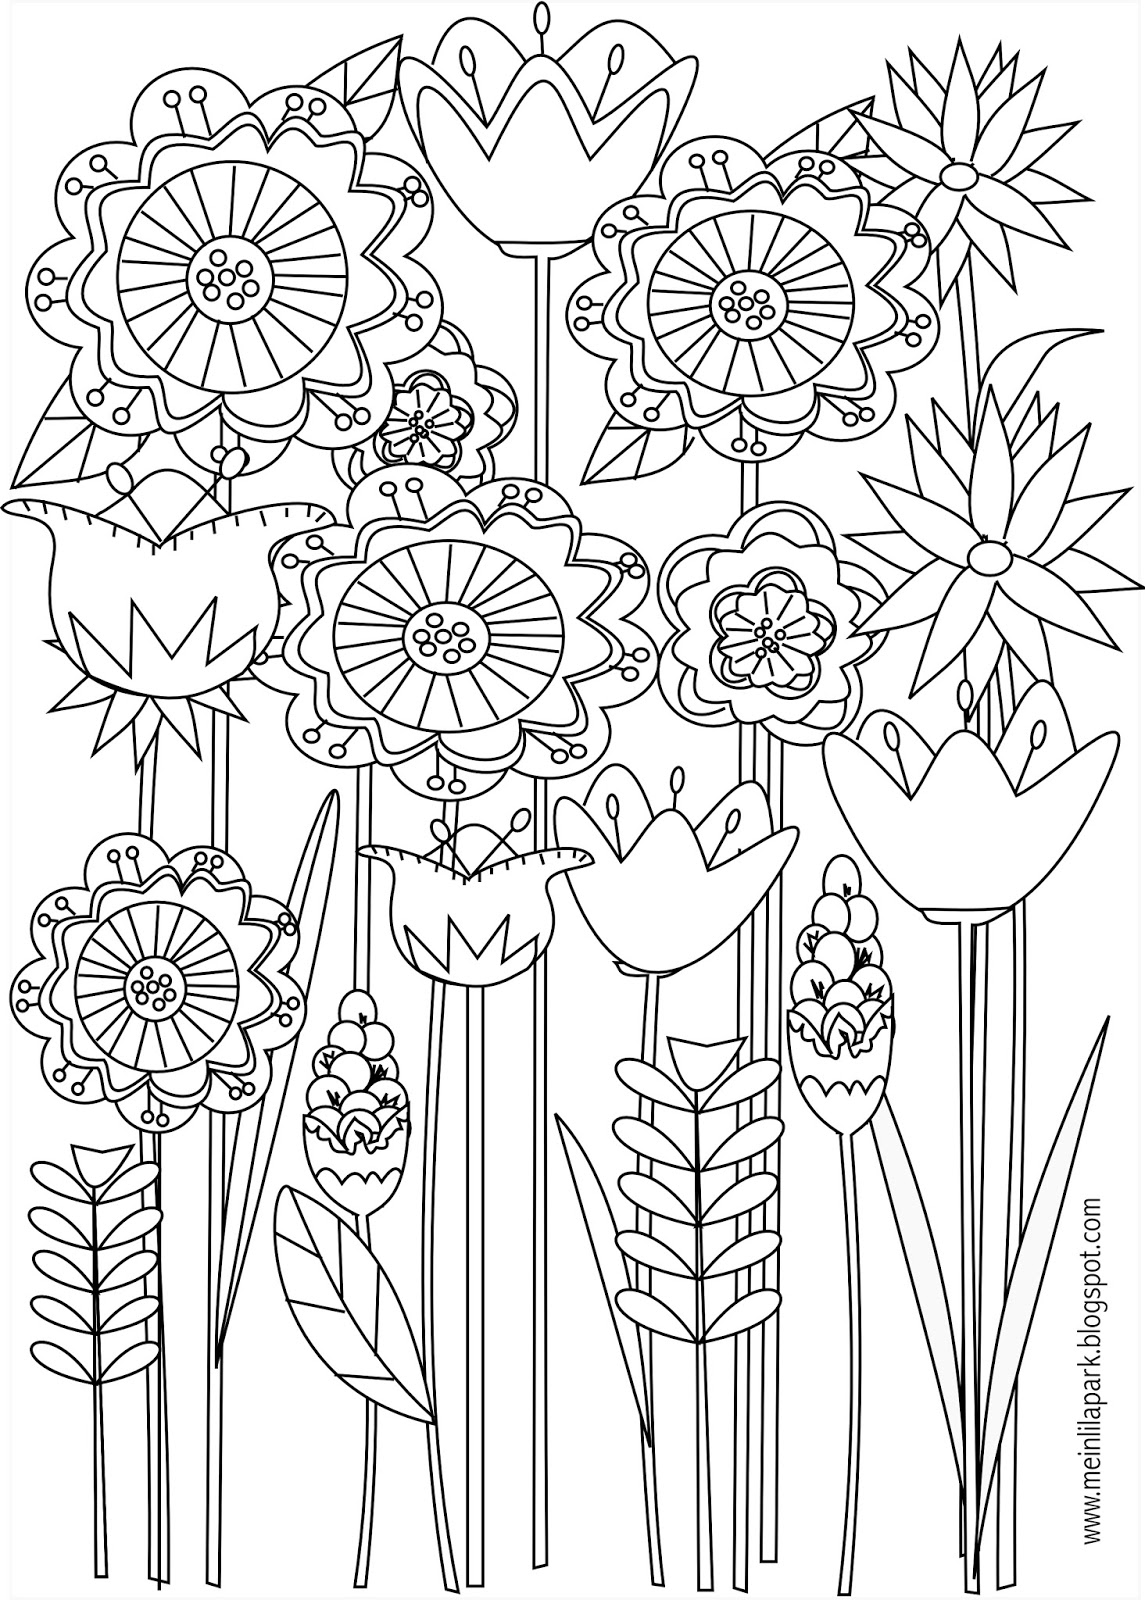 printable flowers coloring pages free printable flower coloring pages for kids best pages flowers printable coloring